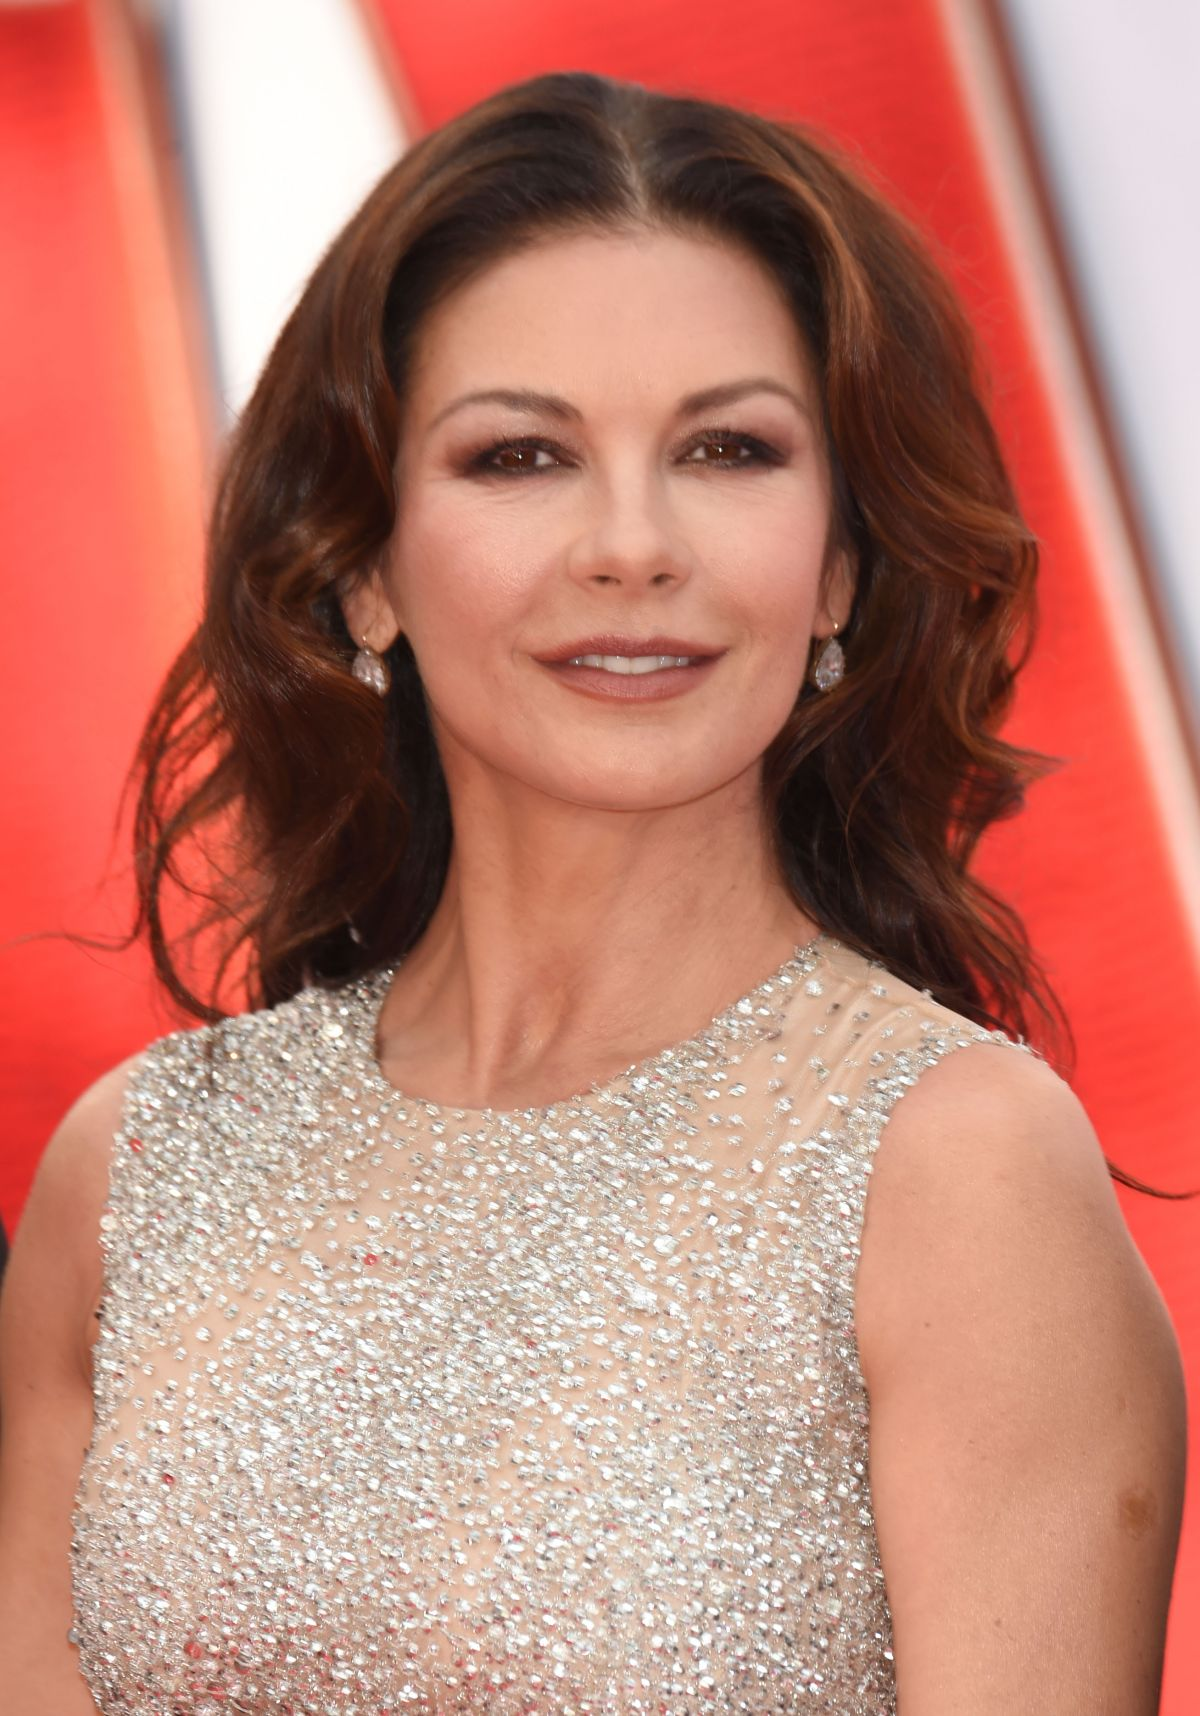 CATHERINE ZETA JONES at Ant-man Premiere in London - HawtCelebs ... Catherine Zeta Jones